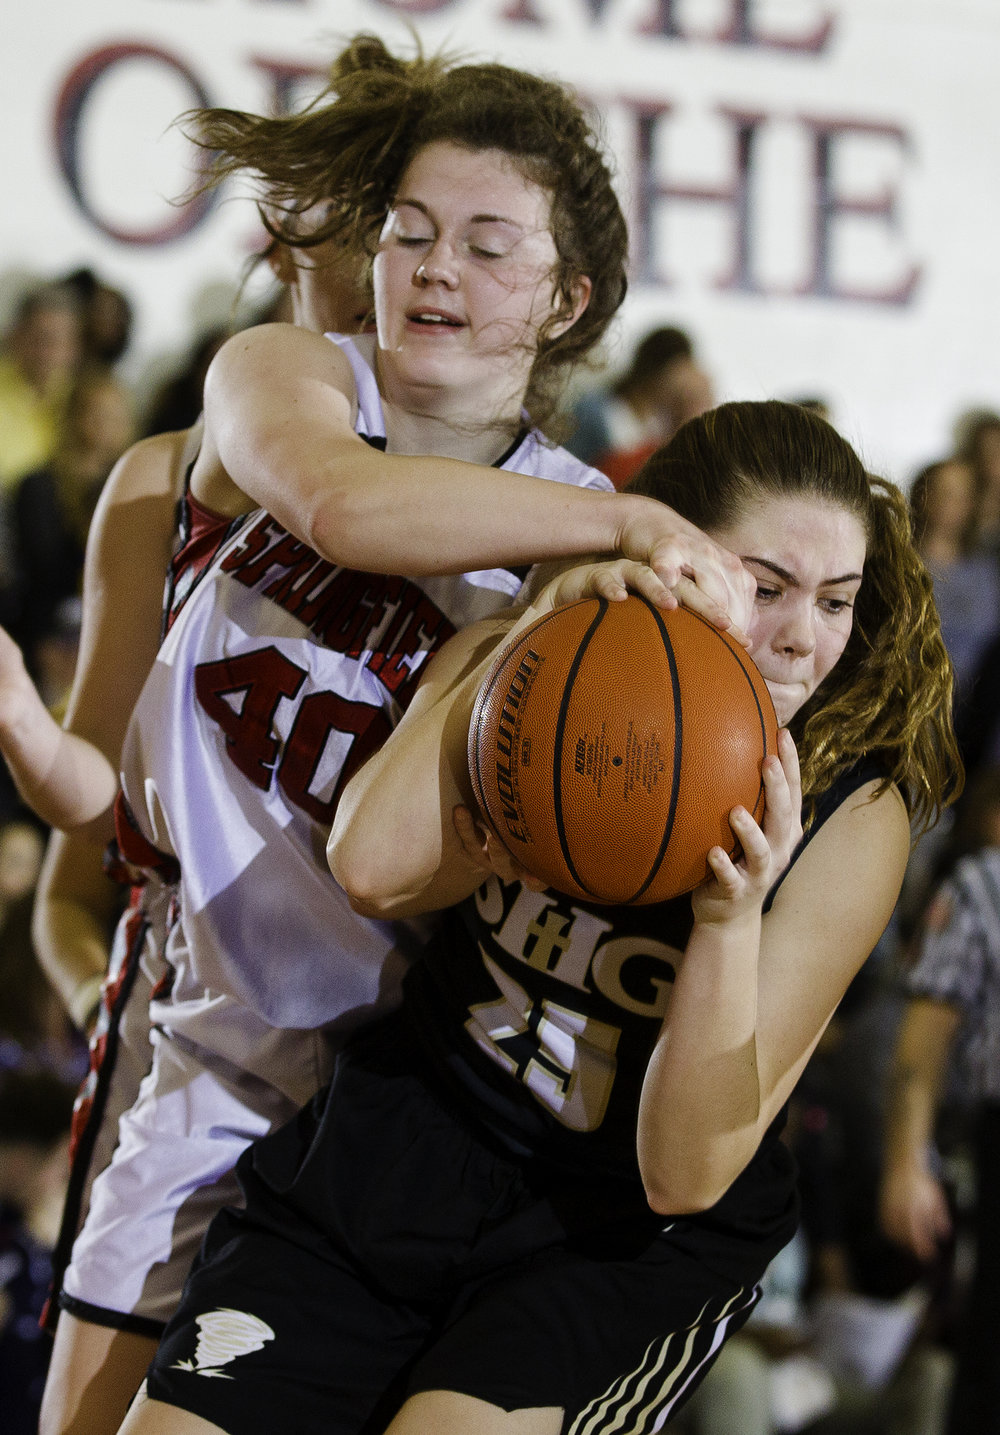 Springfield's Abby Ratsch and Sacred Heart-Griffin's Abbie Antonacci fight for a rebound during the Girls City Tournament at Springfield High School Saturday, Jan. 26, 2018. [Ted Schurter/The State Journal-Register]